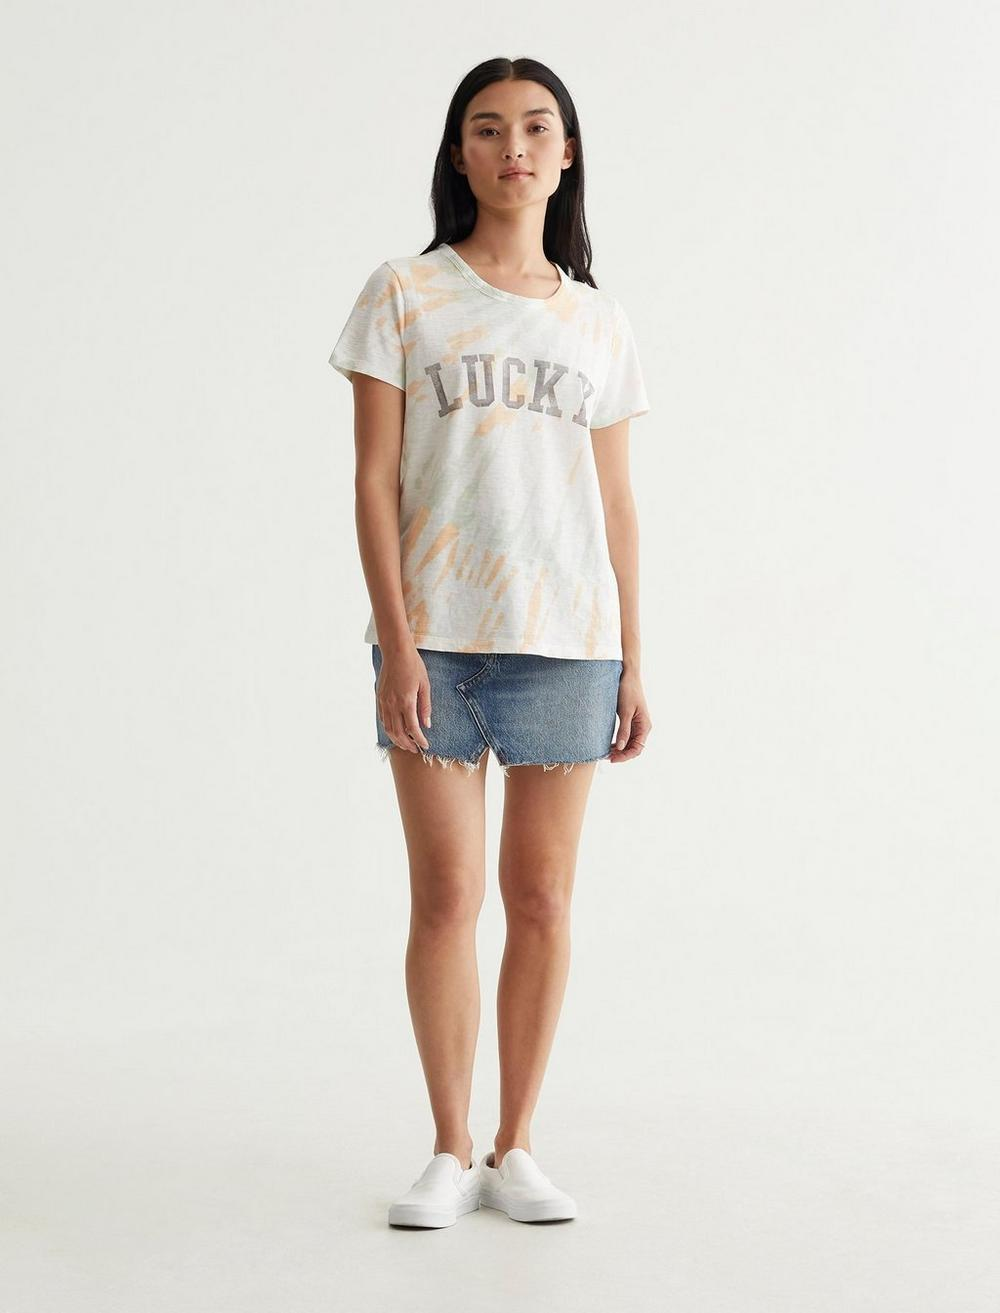 LUCKY FONT CLASSIC TEE, image 2